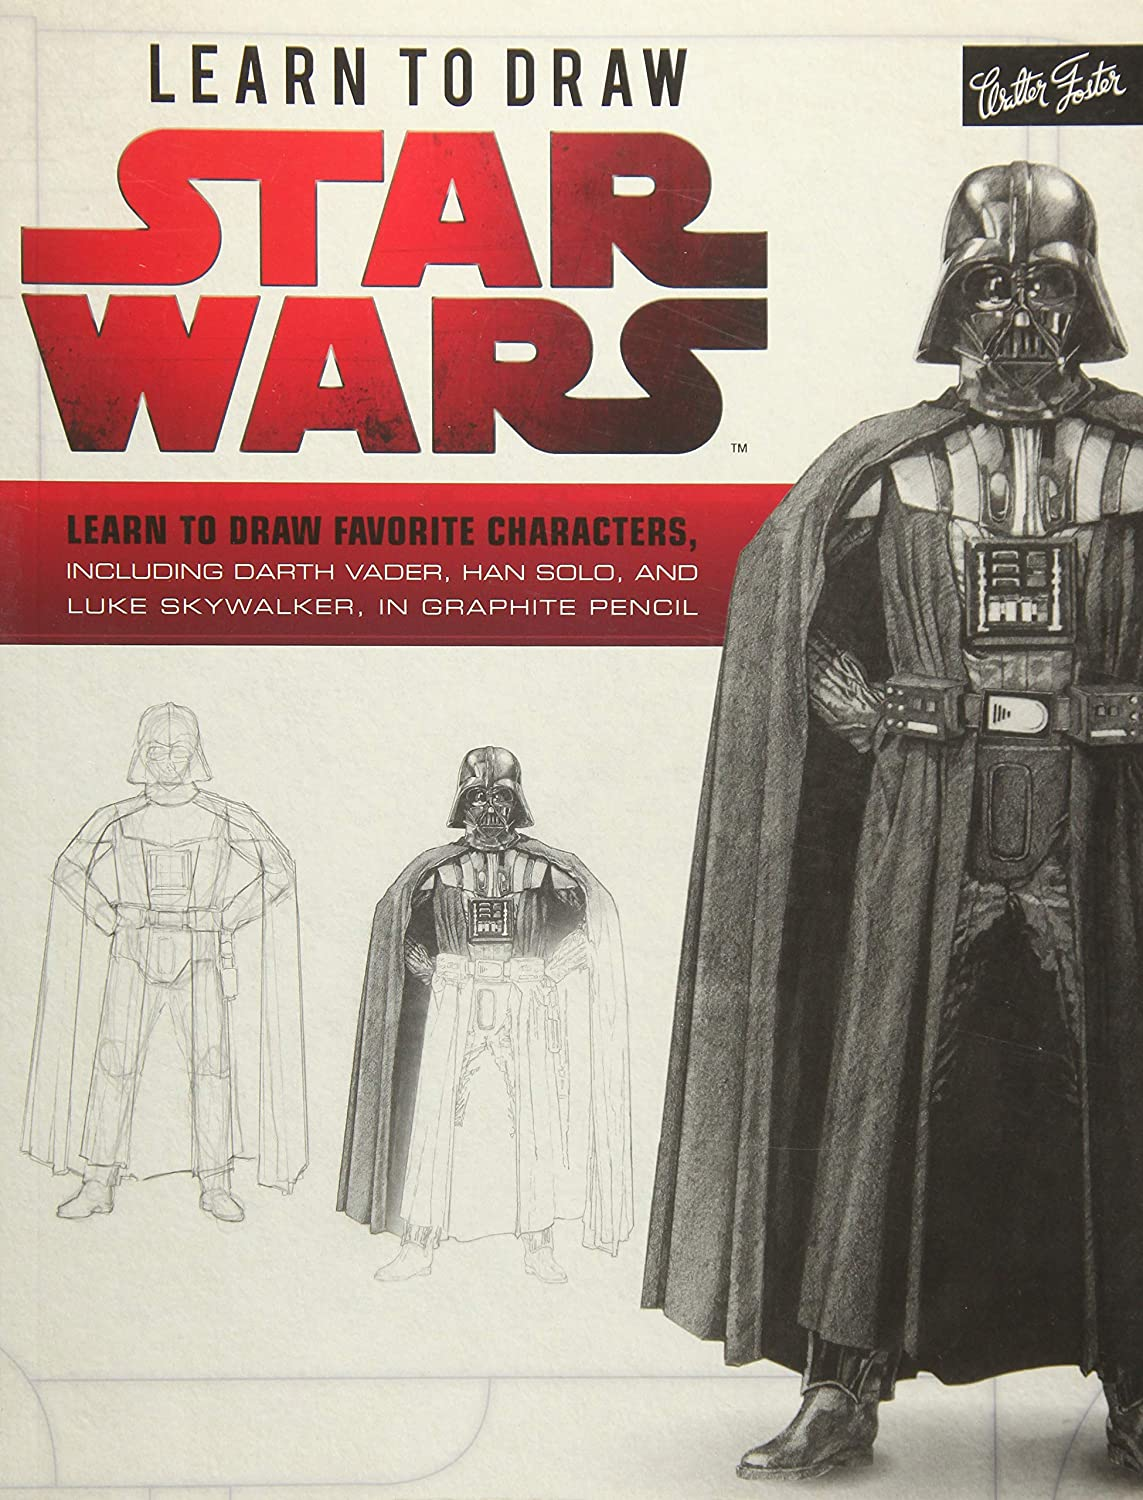 Learn to draw star wars learn to draw favorite characters including darth vader han solo and luke skywalker in graphite pencil amazon ca walter